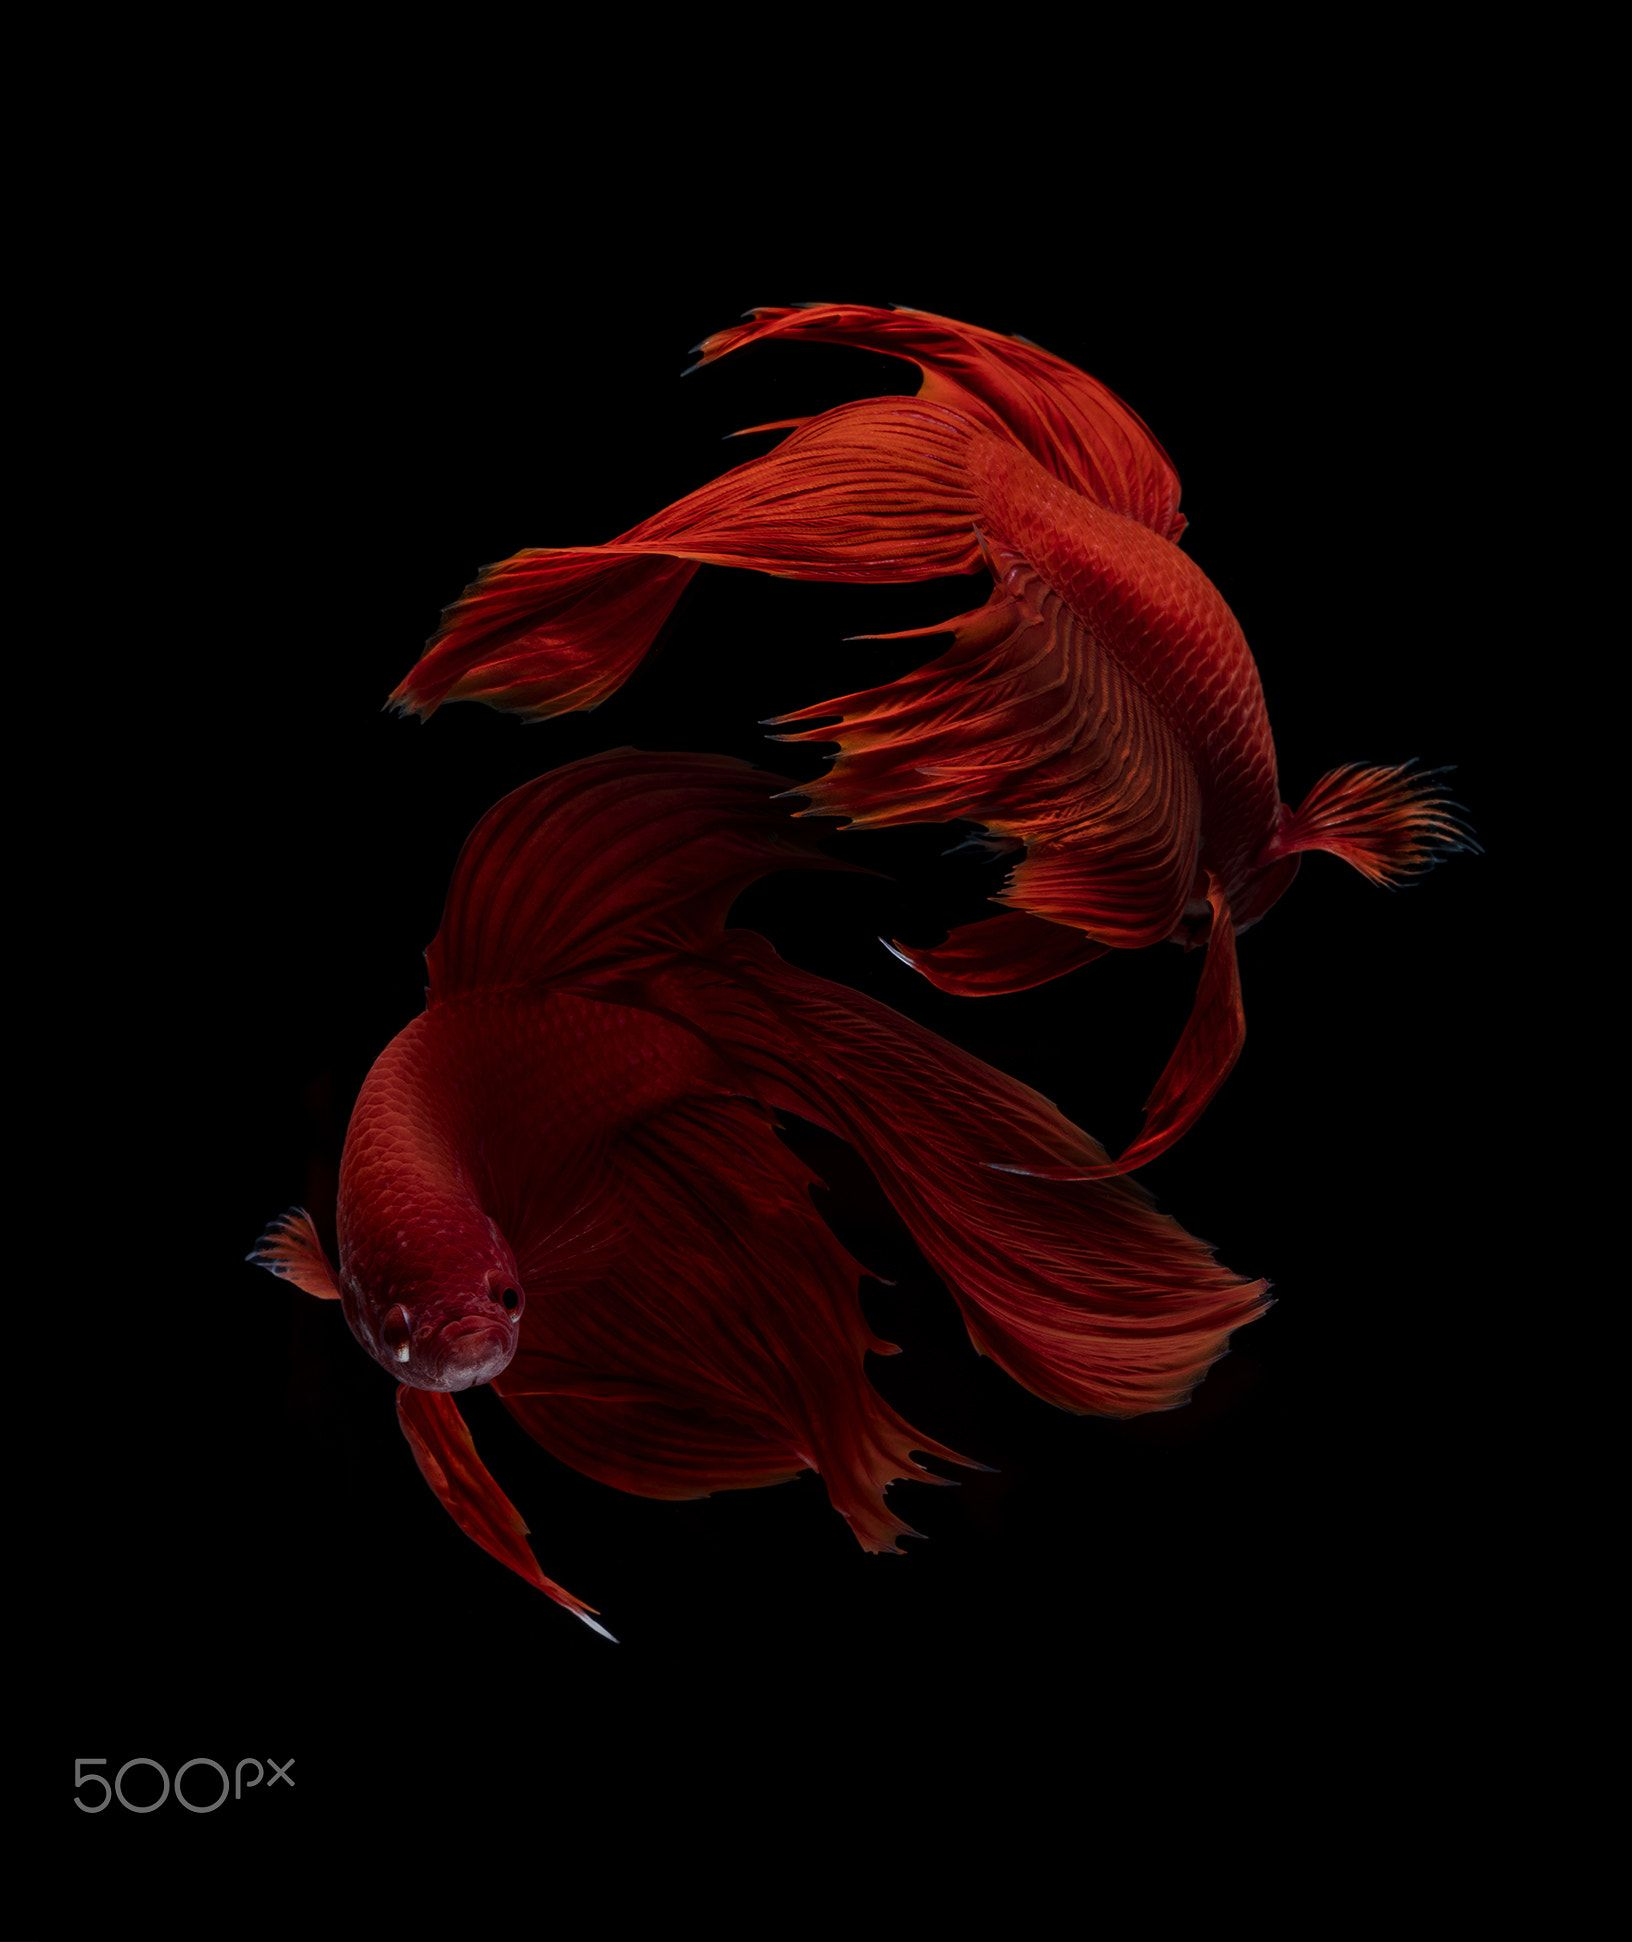 Red Betta Fish Composed With Software Over Black Background Two Red Betta Fish Swimming On Black Background Composed With Betta Fish Betta Black Backgrounds